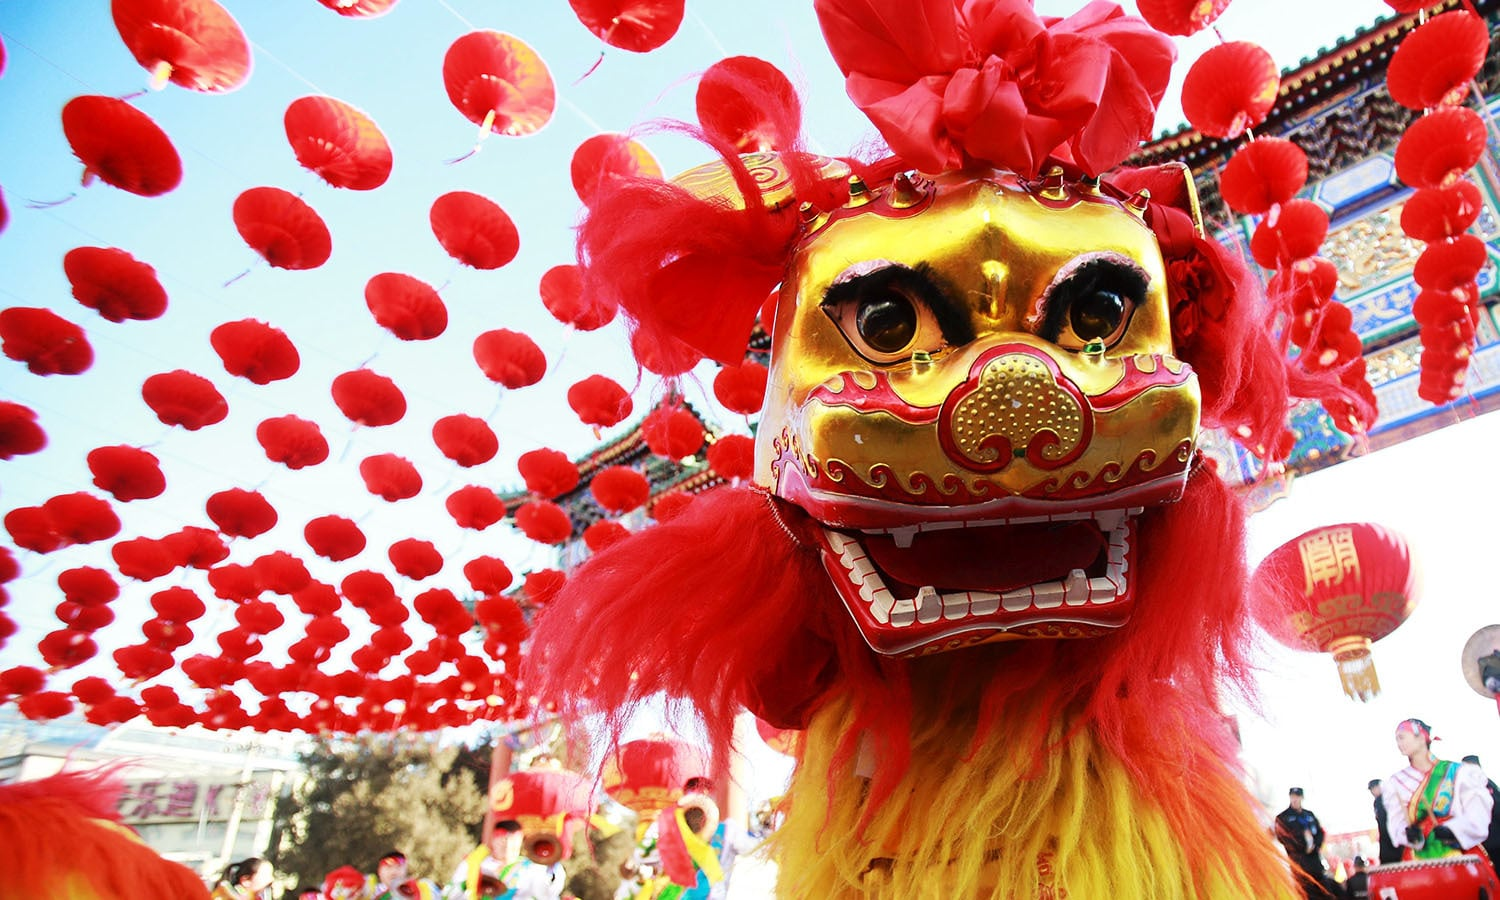 traditional dancers perform the lion dance during the opening ceremony of a temple fair - Chinese New Year Celebration